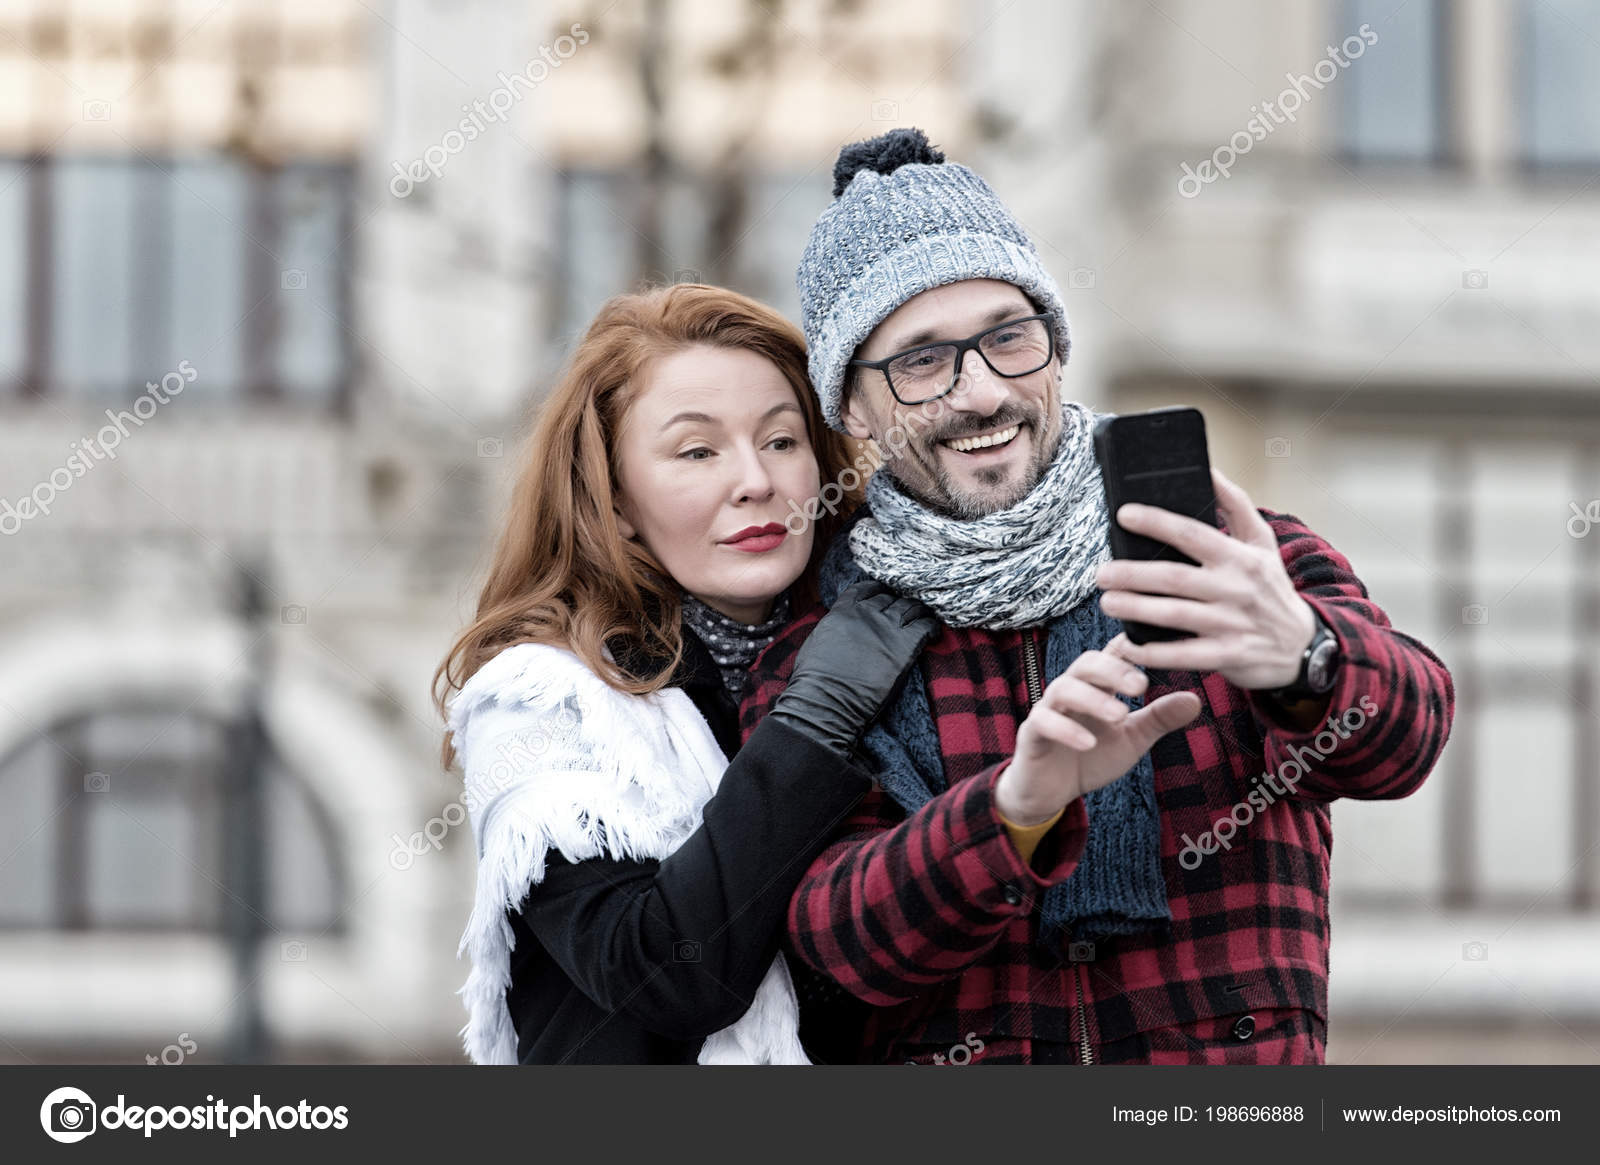 chat free with women